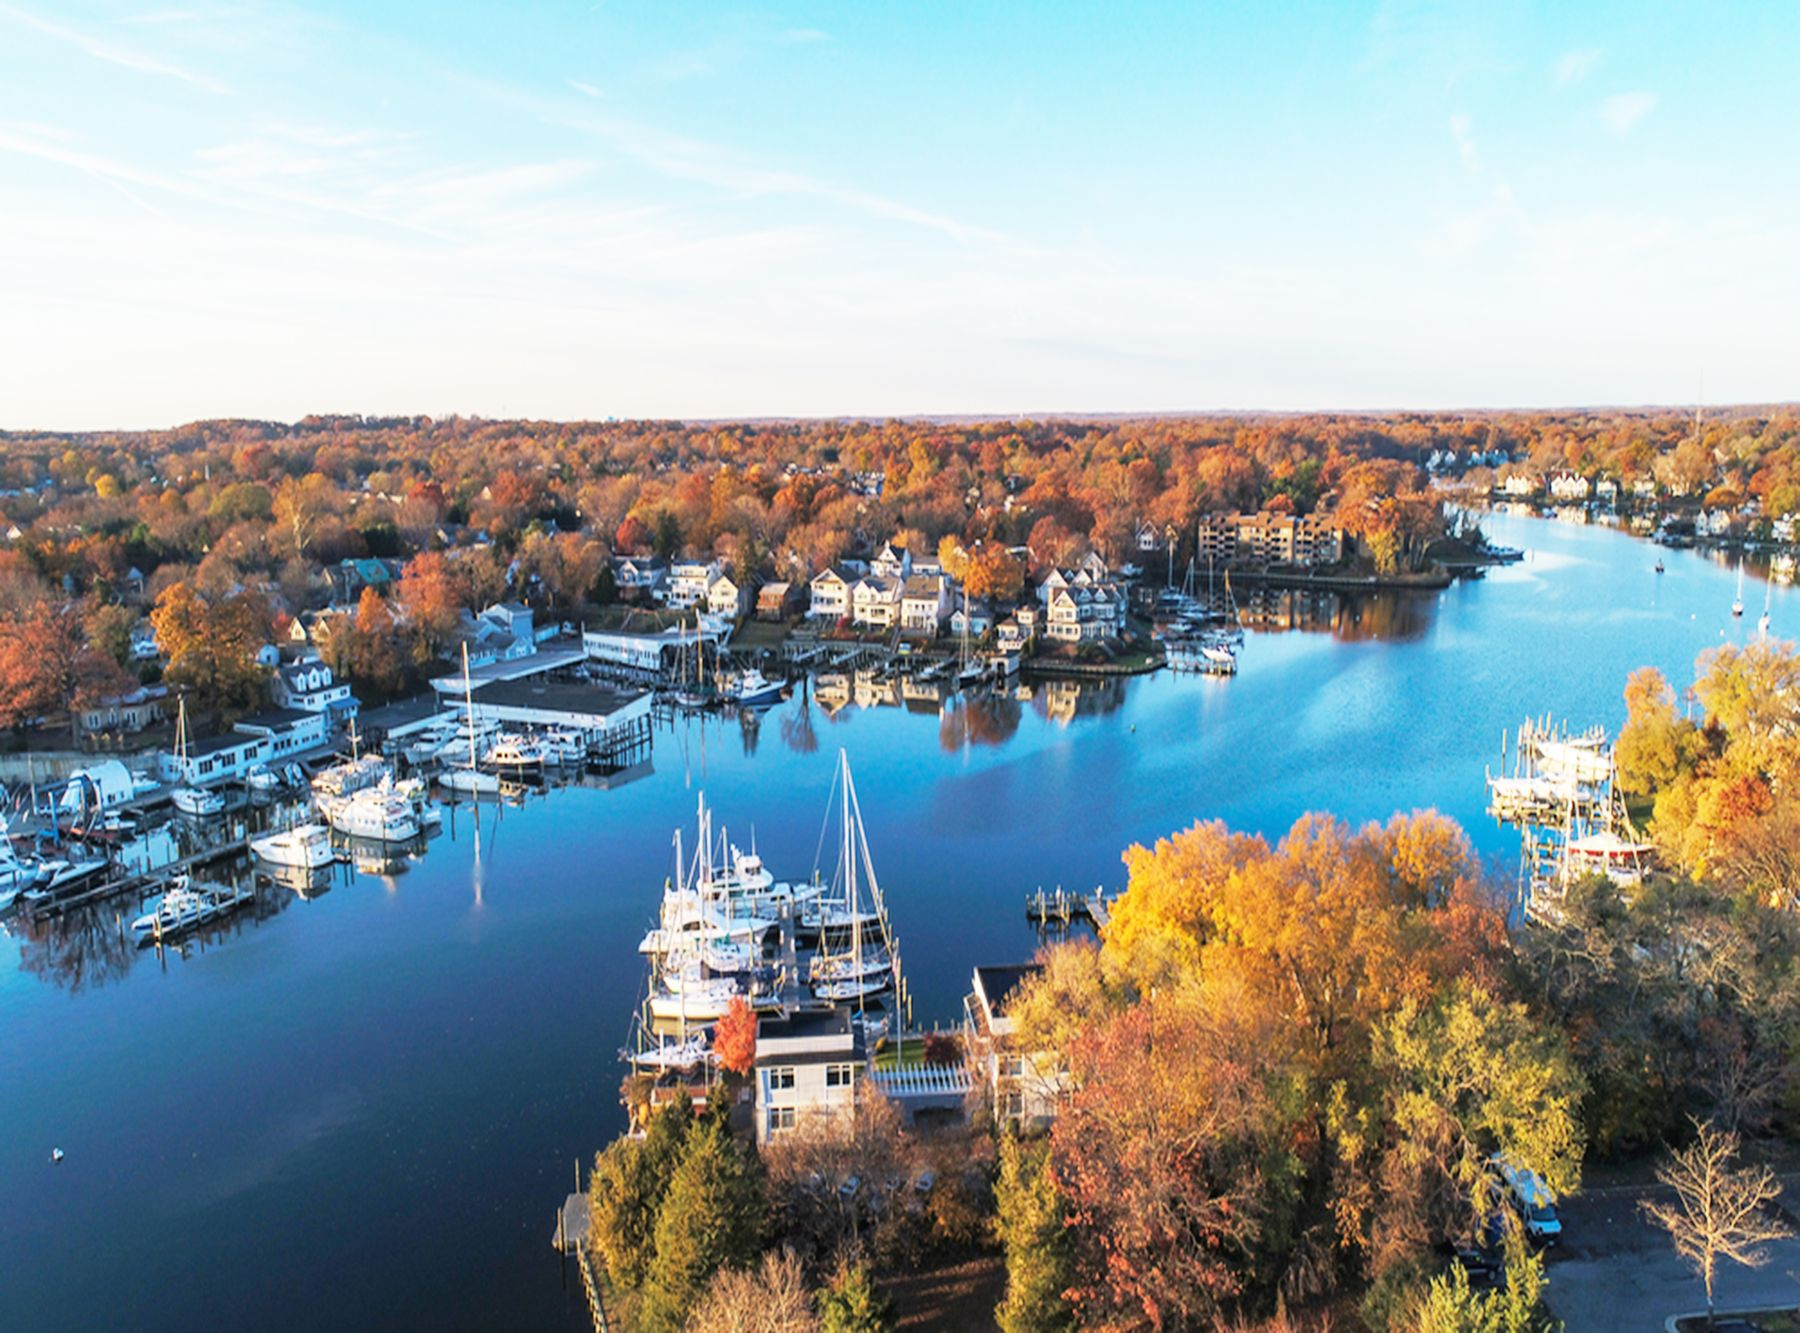 Aerial view of historic weekend getaway spot: Annapolis, Maryland